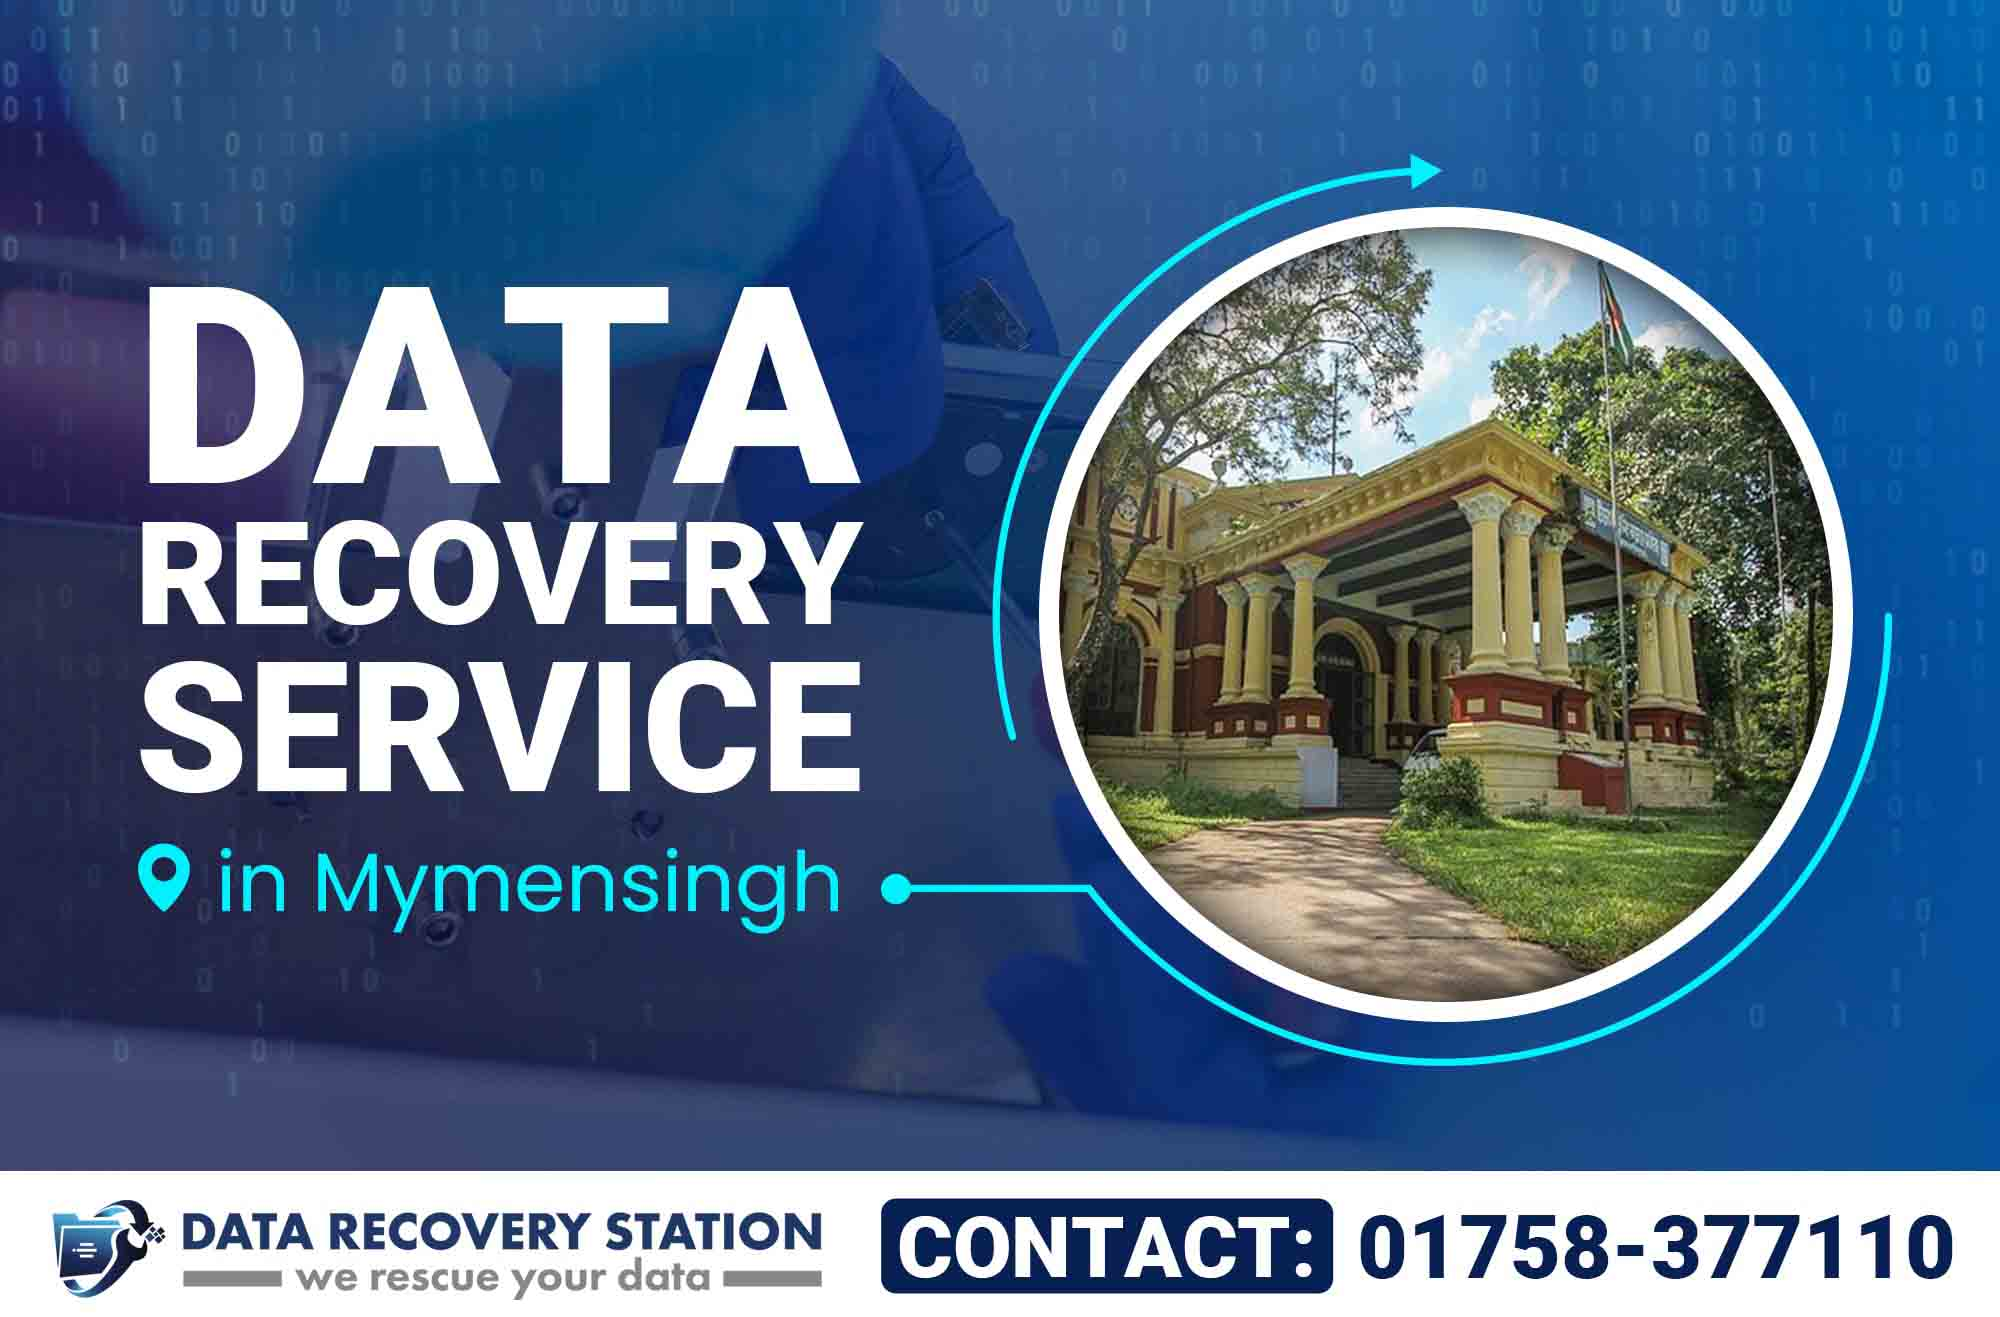 Data recovery service in mymensingh